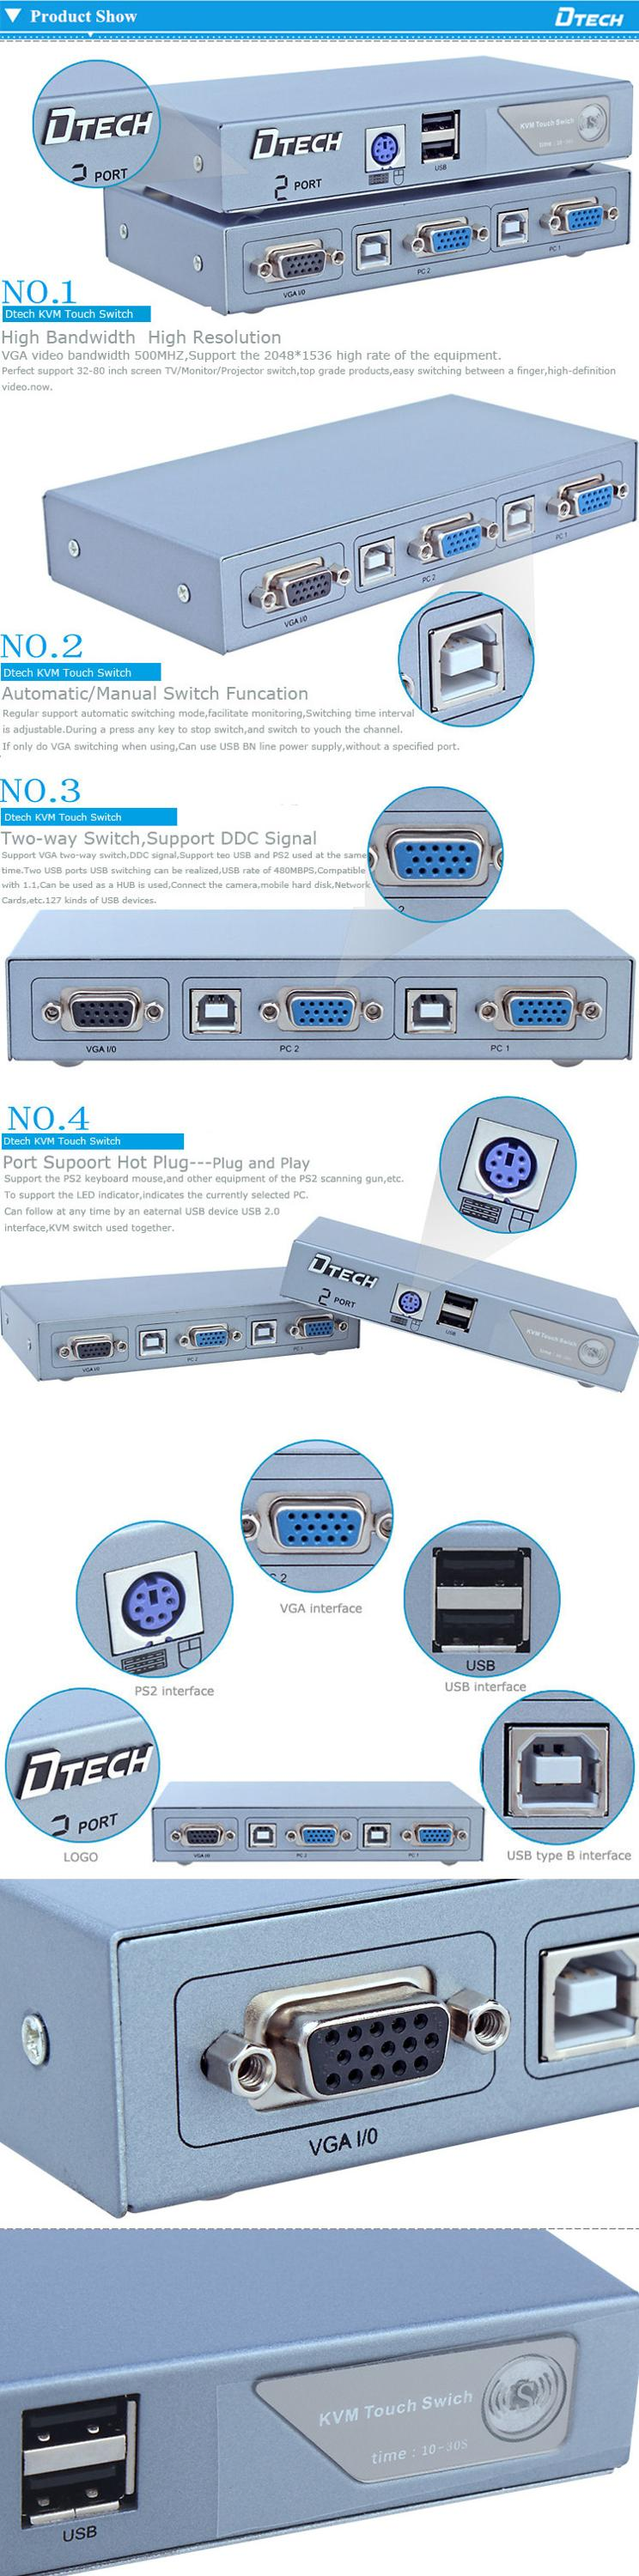 Alibaba Wholesale Cctv Channel Usb 20 Switch Support 20481536 Semi